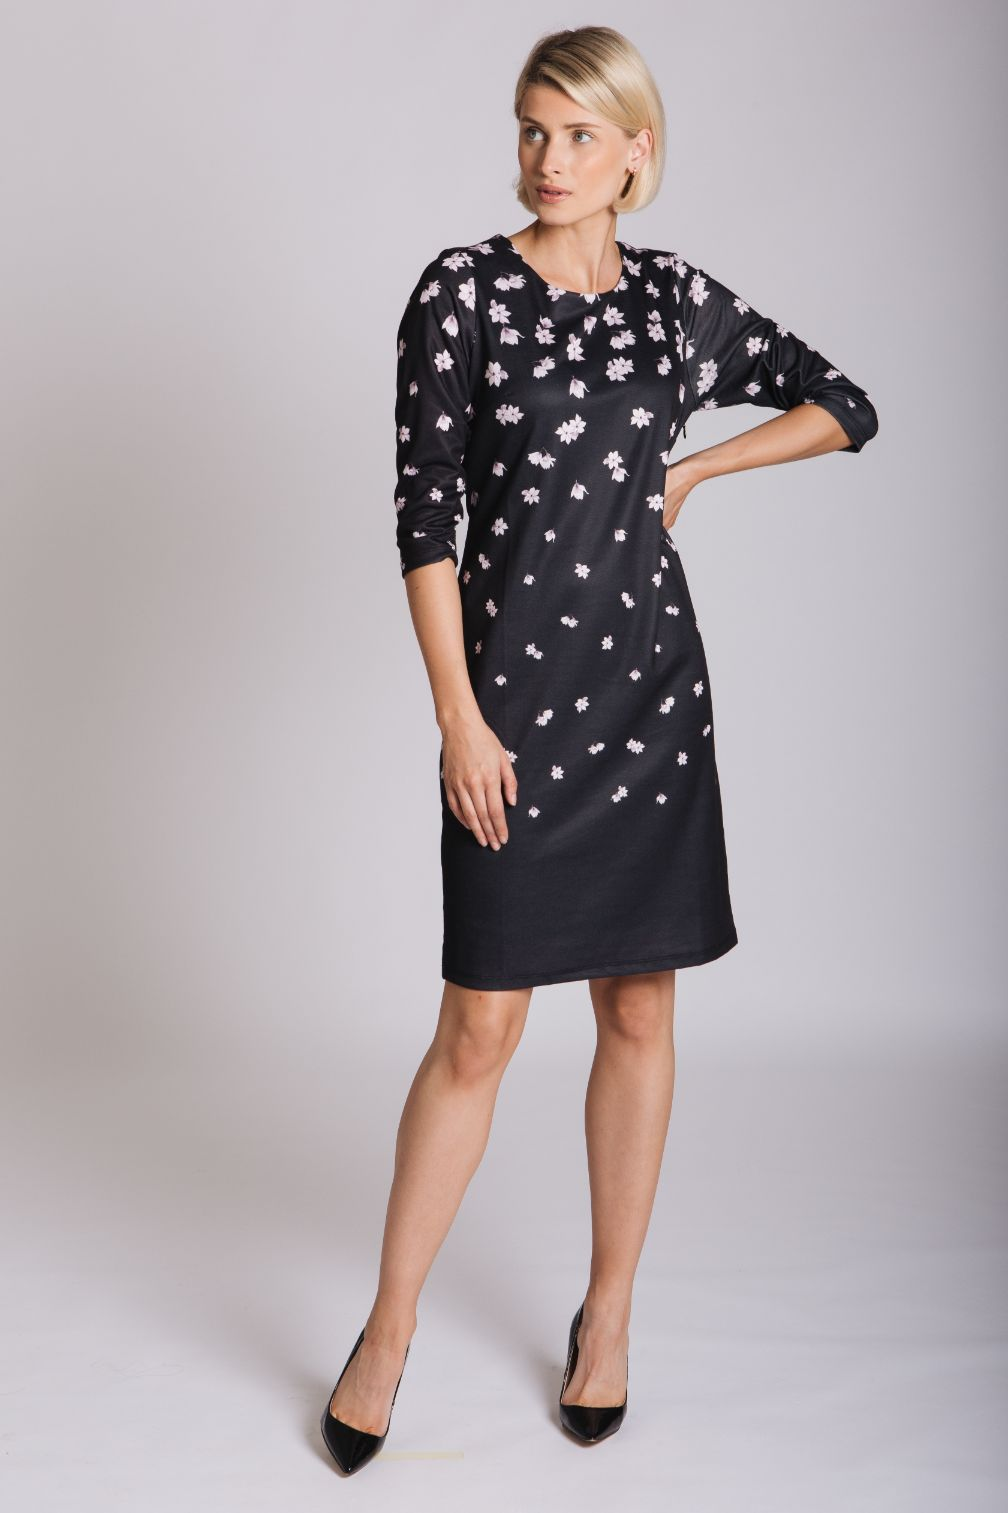 Black Falling Flowers Print Dress